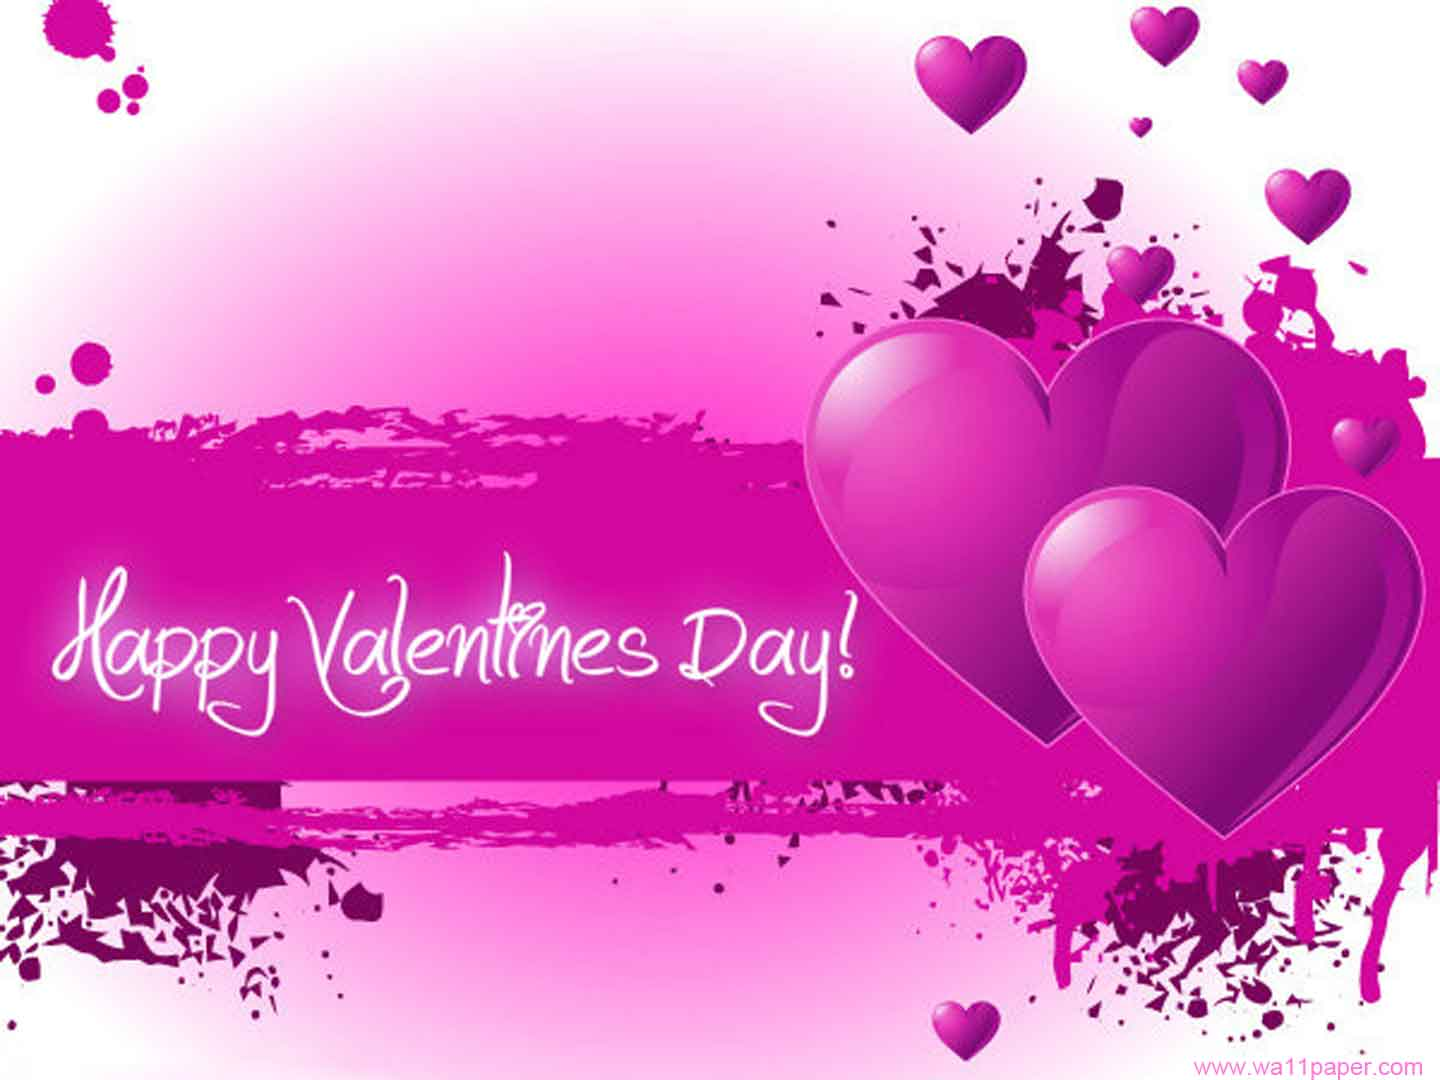 Pink Valentines Day Backgrounds 10554 Hd Wallpapers in Celebrations 1440x1080